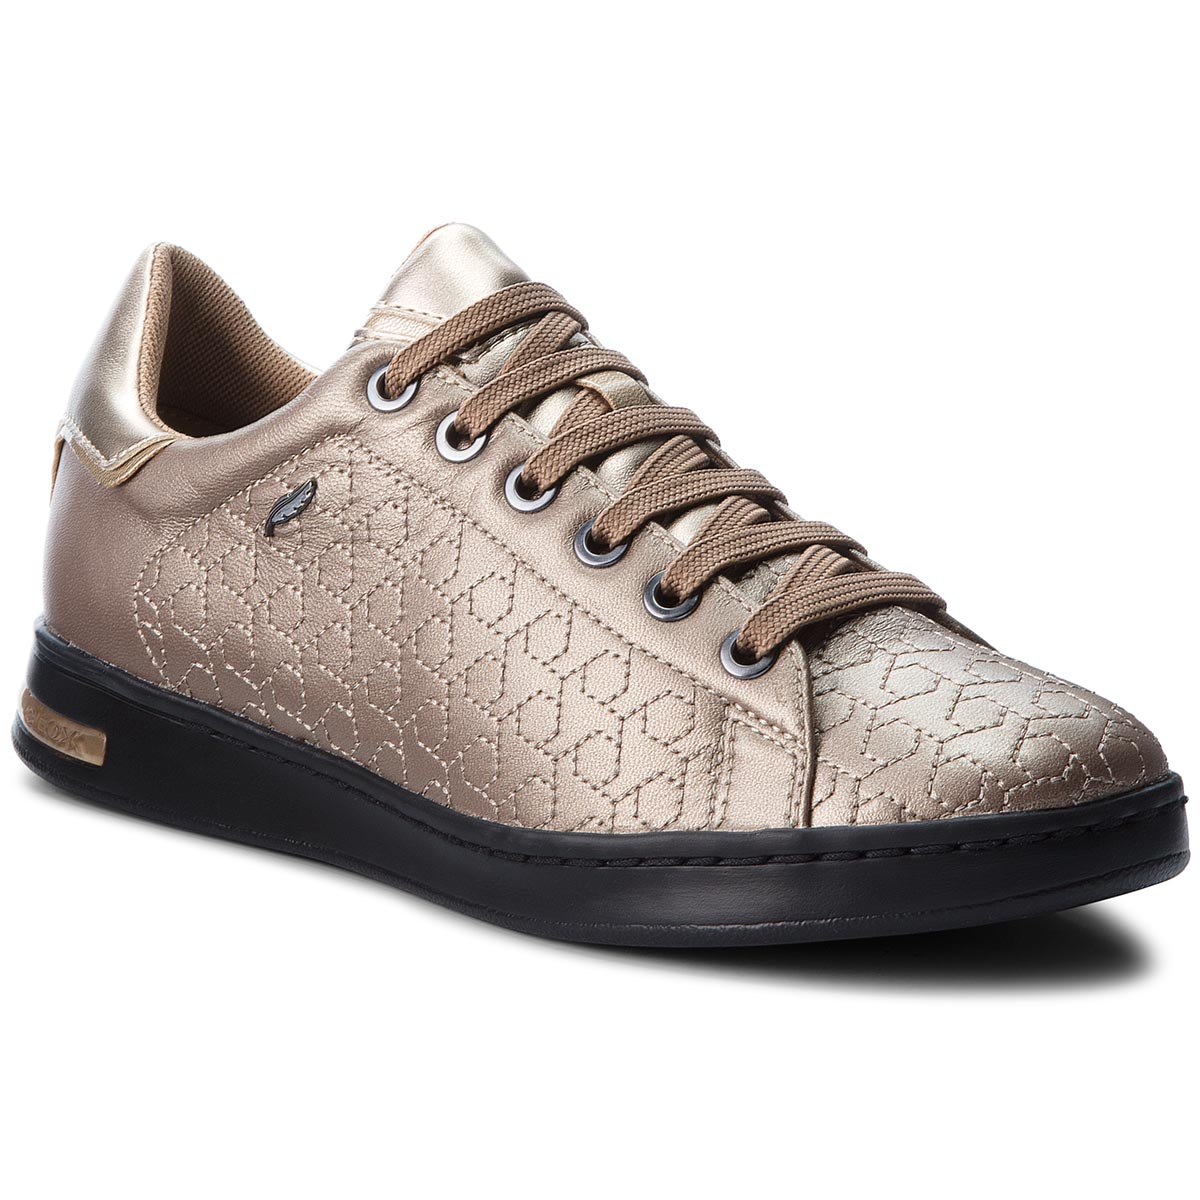 Sneakers GEOX D Blomiee C D926HC 0PVBC CH65A Lt Taupe